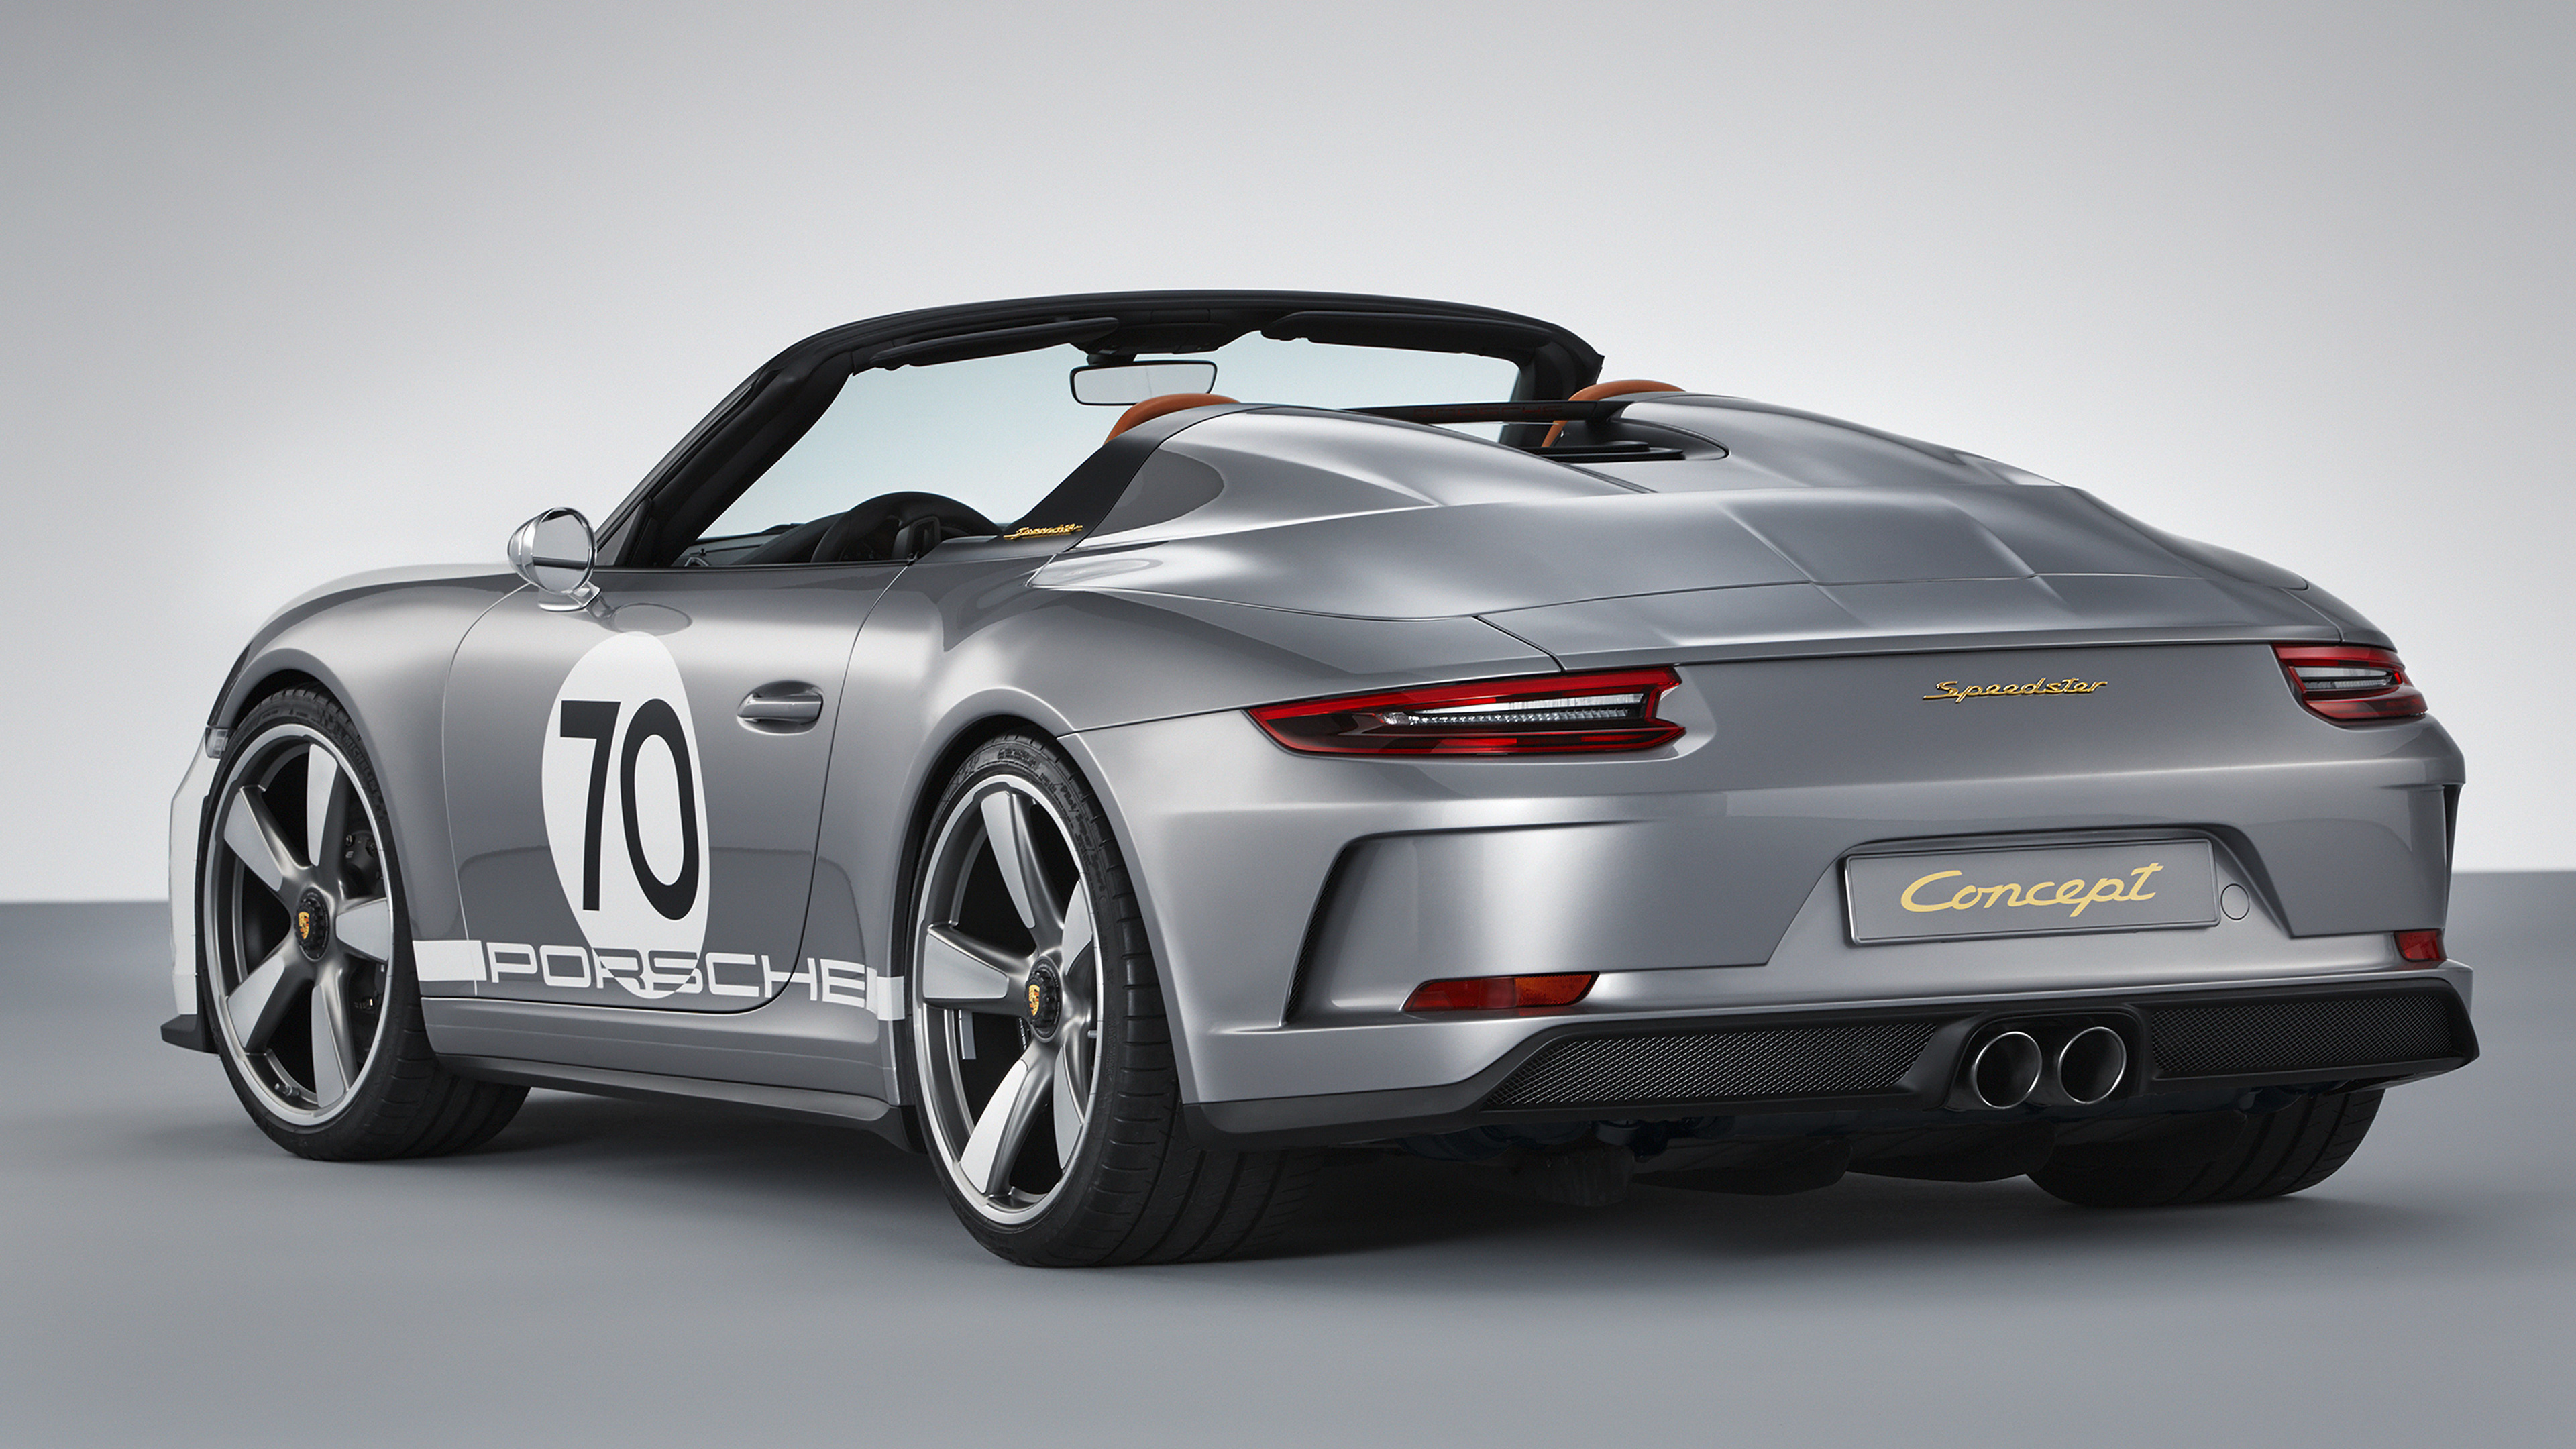 porsche 911 speedster concept 2018 rear 1539111698 - Porsche 911 Speedster Concept 2018 Rear - porsche wallpapers, porsche 911 wallpapers, hd-wallpapers, hd wallpapers2018 cars wallpapers, cars wallpapers, 4k-wallpapers